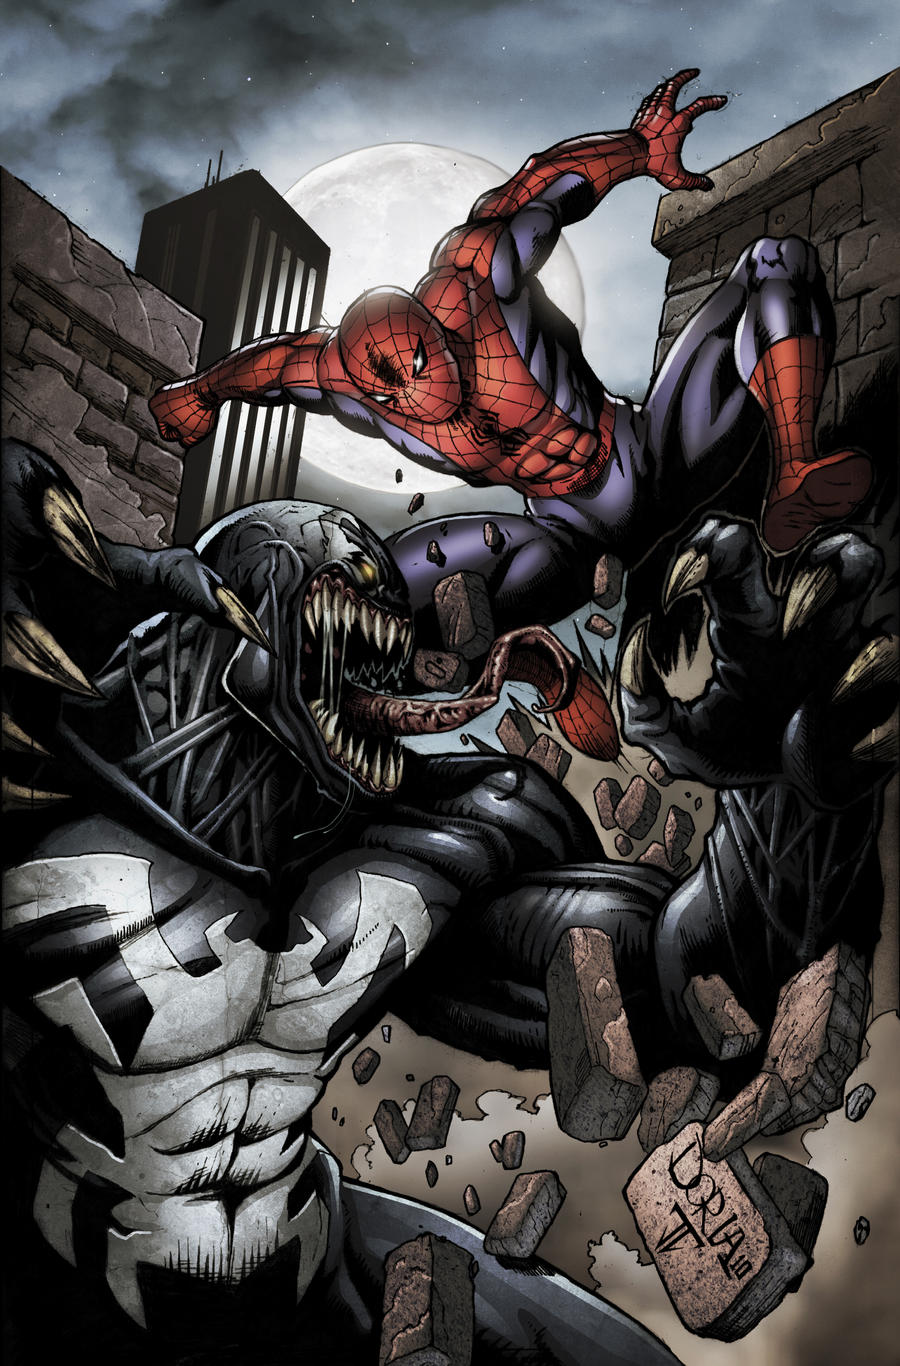 Venom spiderman art - photo#26